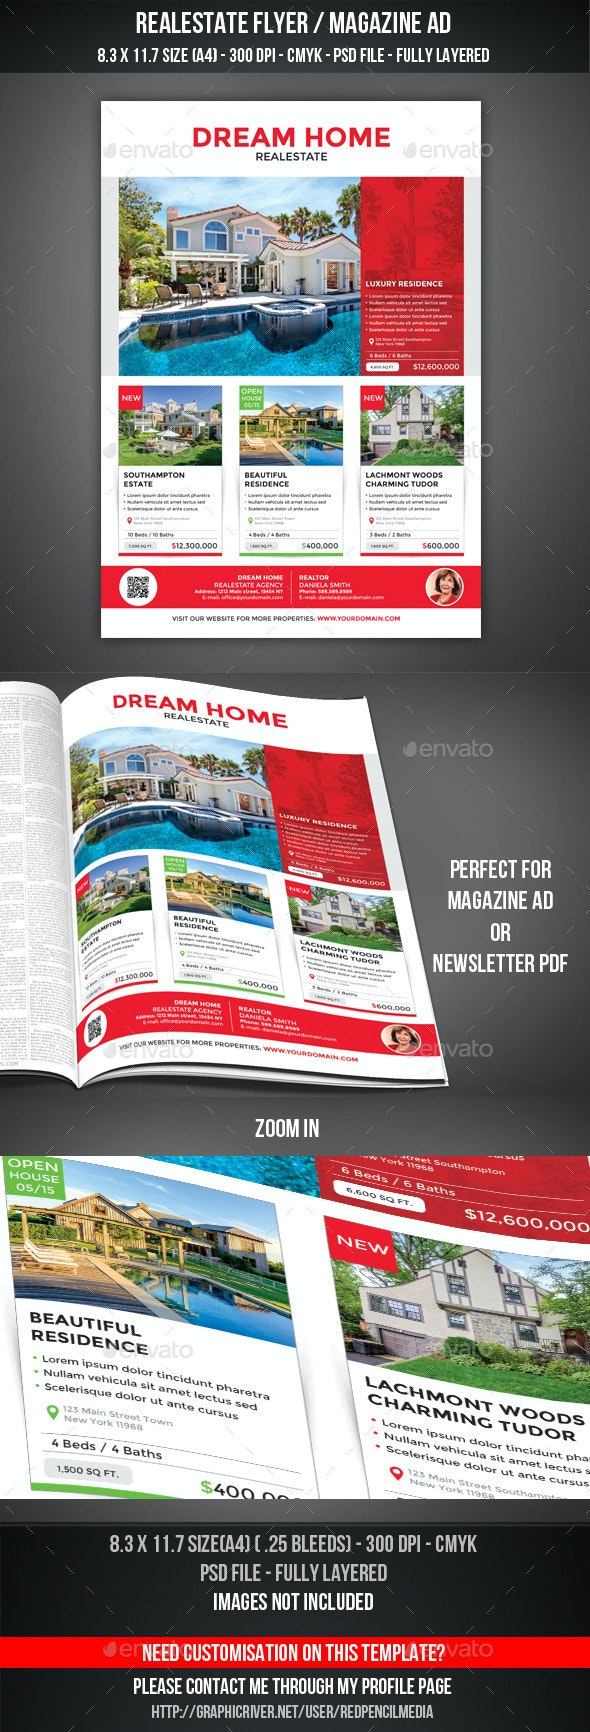 Realestate Flyer / Magazine AD - Commerce Flyers